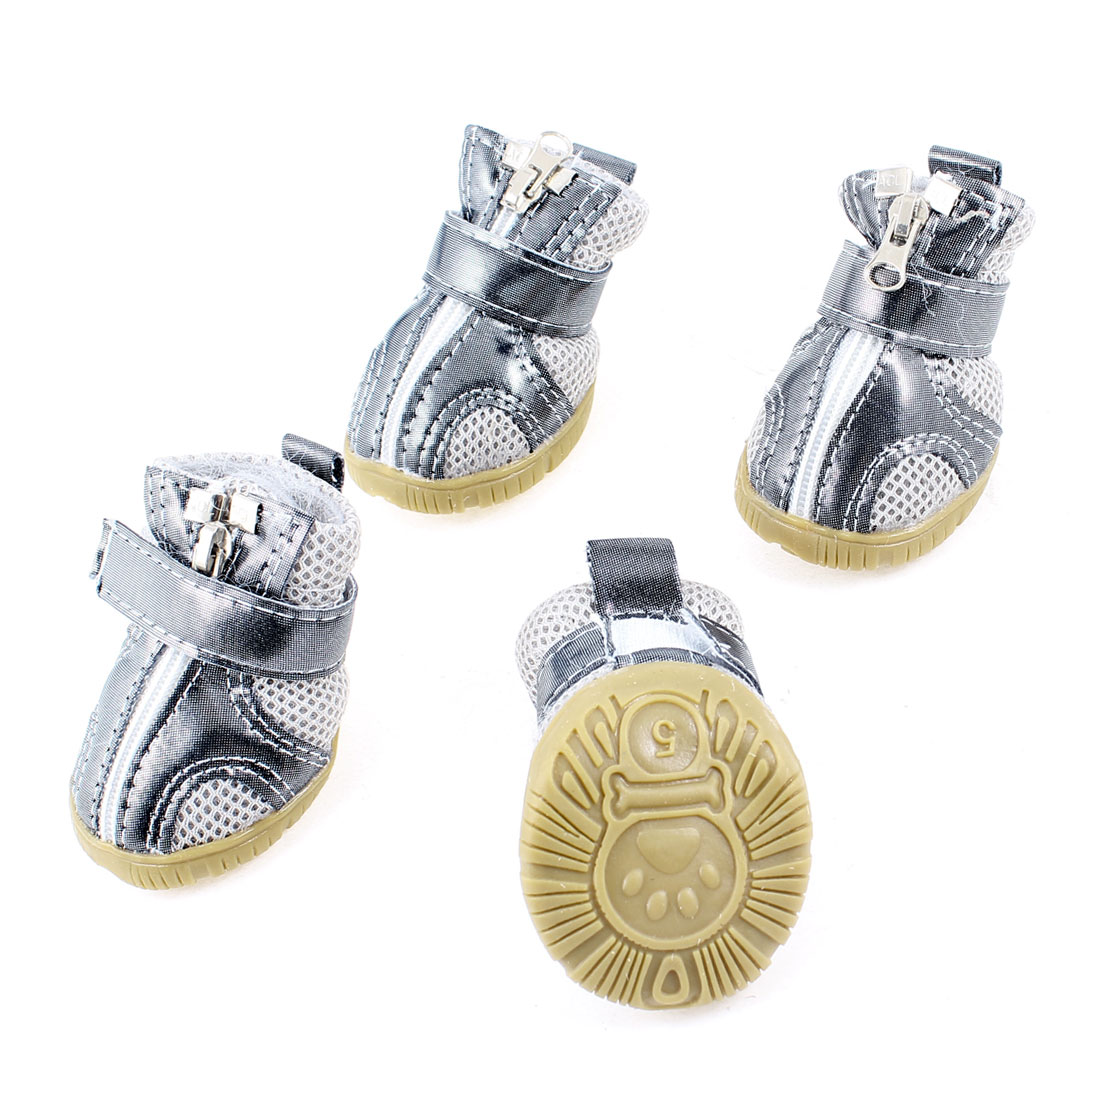 Pet Dog Doggy Adhesive Hook Loop Fastener Zipper Closure Mesh Shoes Boots Booties Gray White 2 Pair Size 5